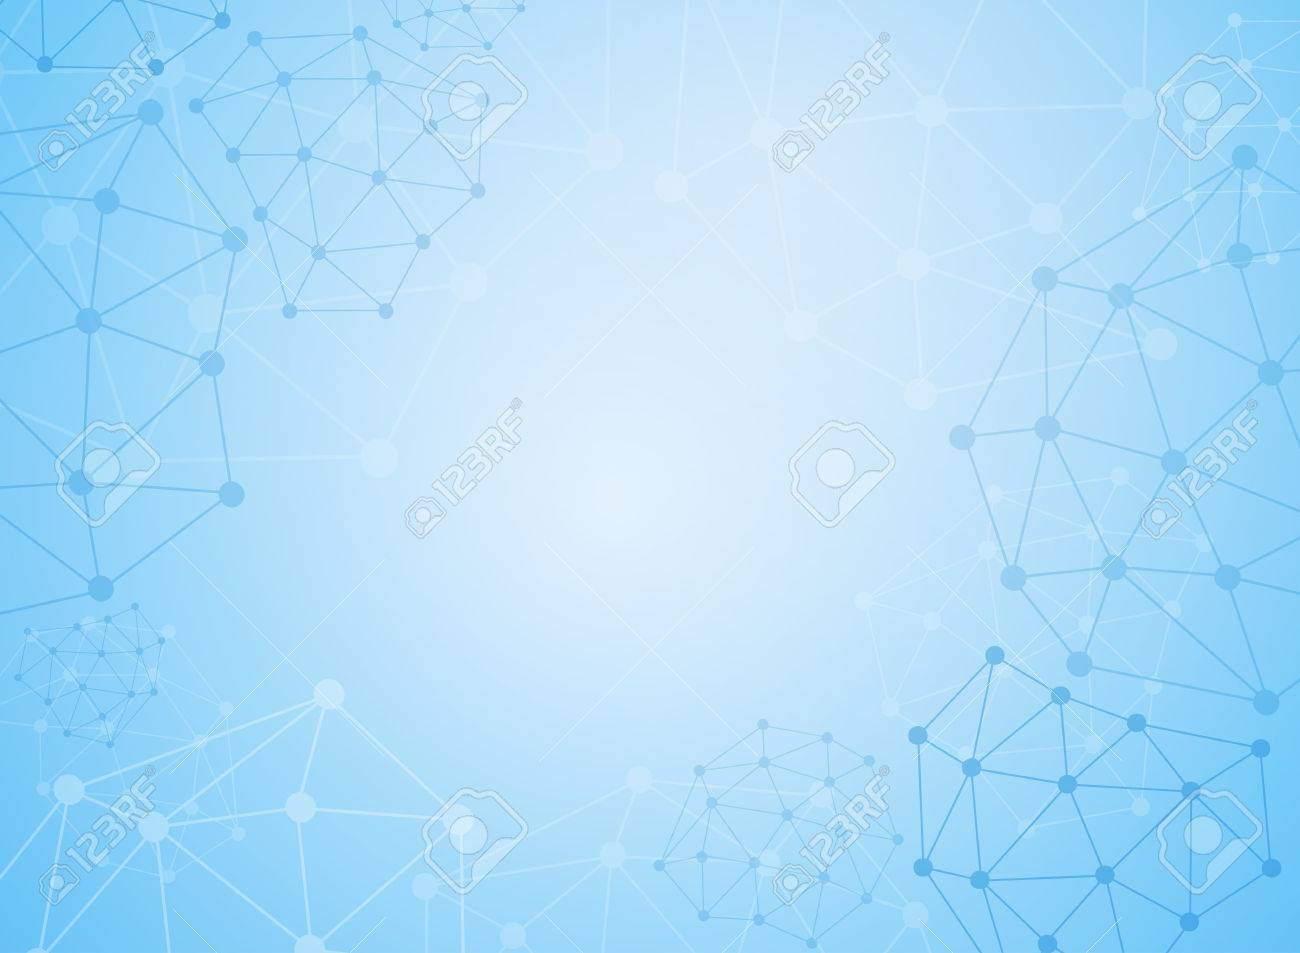 Abstract background medical substance and molecules. - 39537728